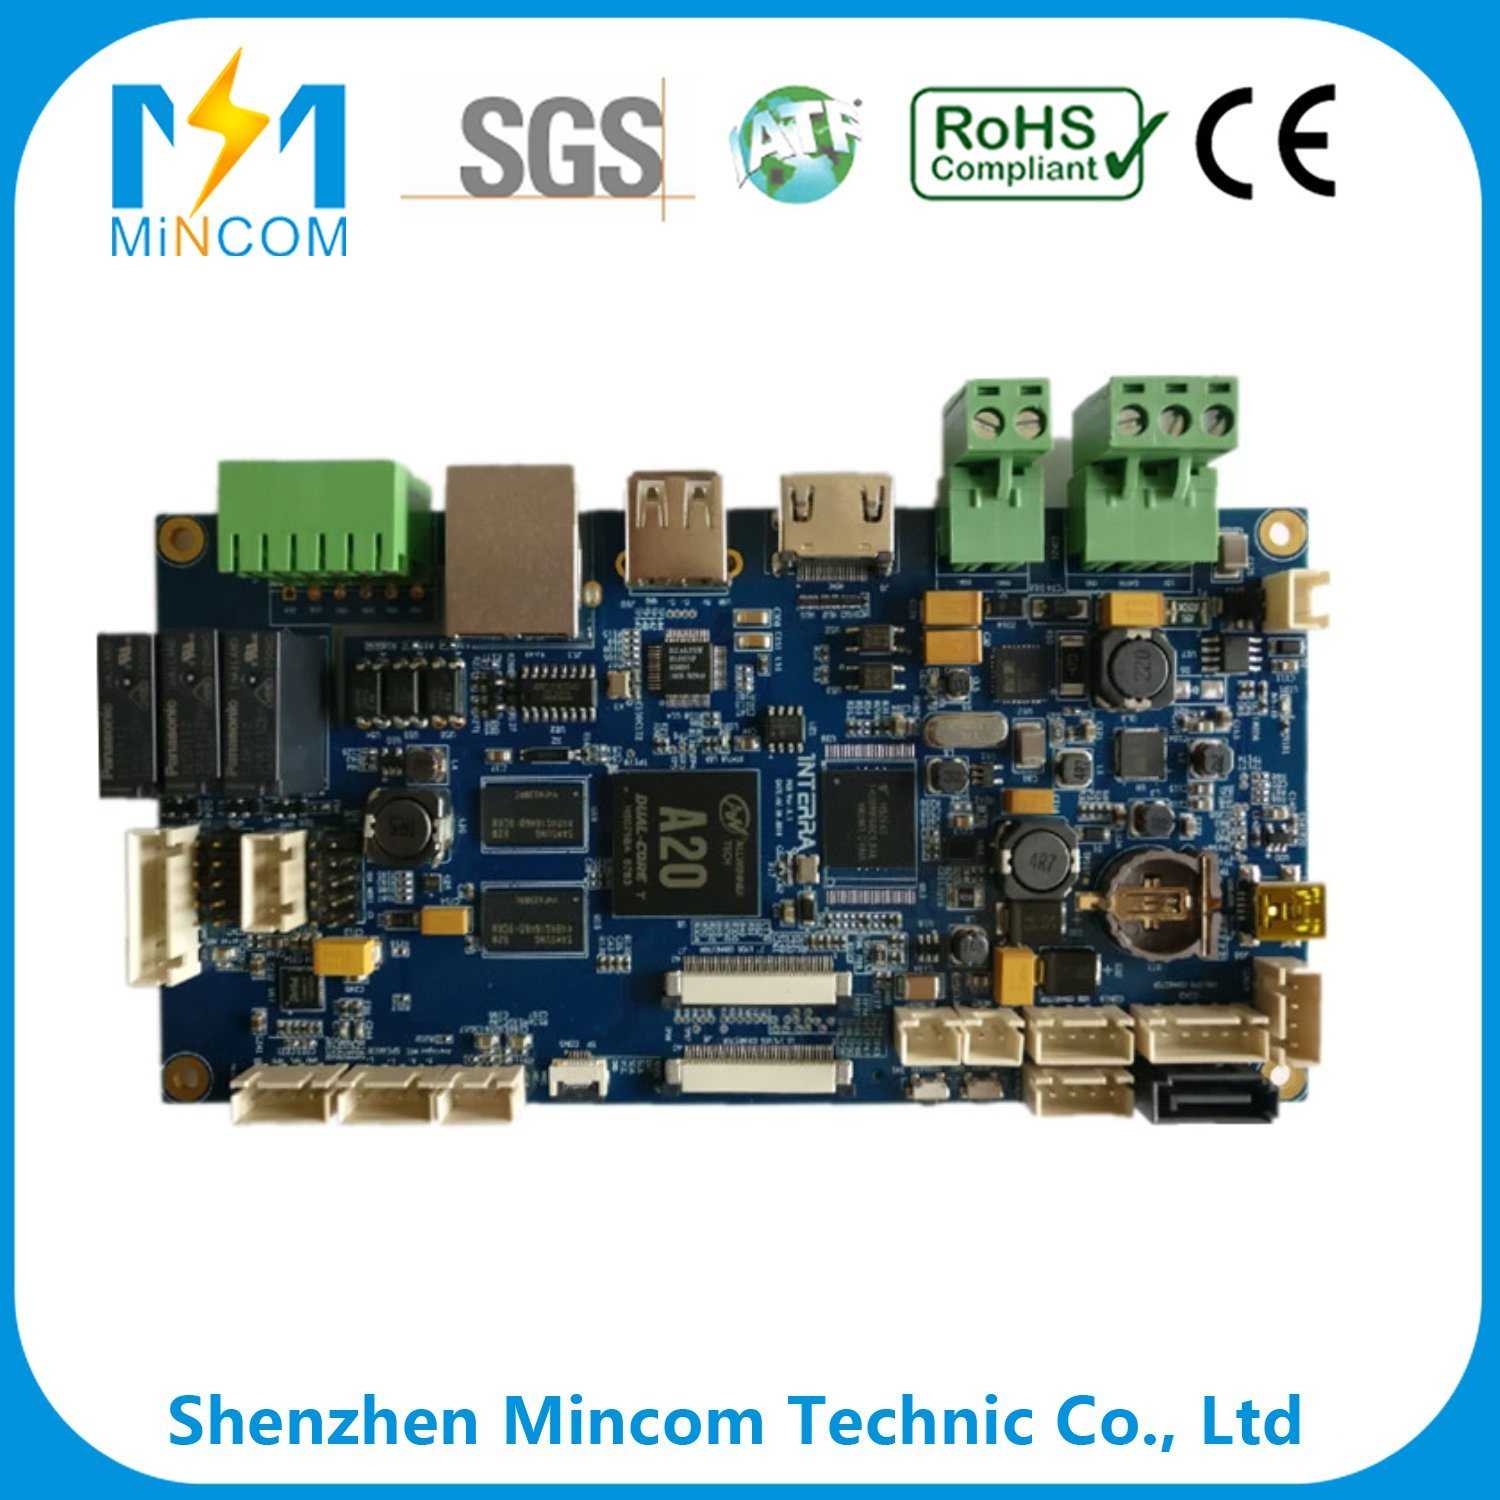 Quick Turn Printed Circuit Boards Layers Multilayer Pcb Board China Inspection For Aviation Pcba Electronics 1500x1500